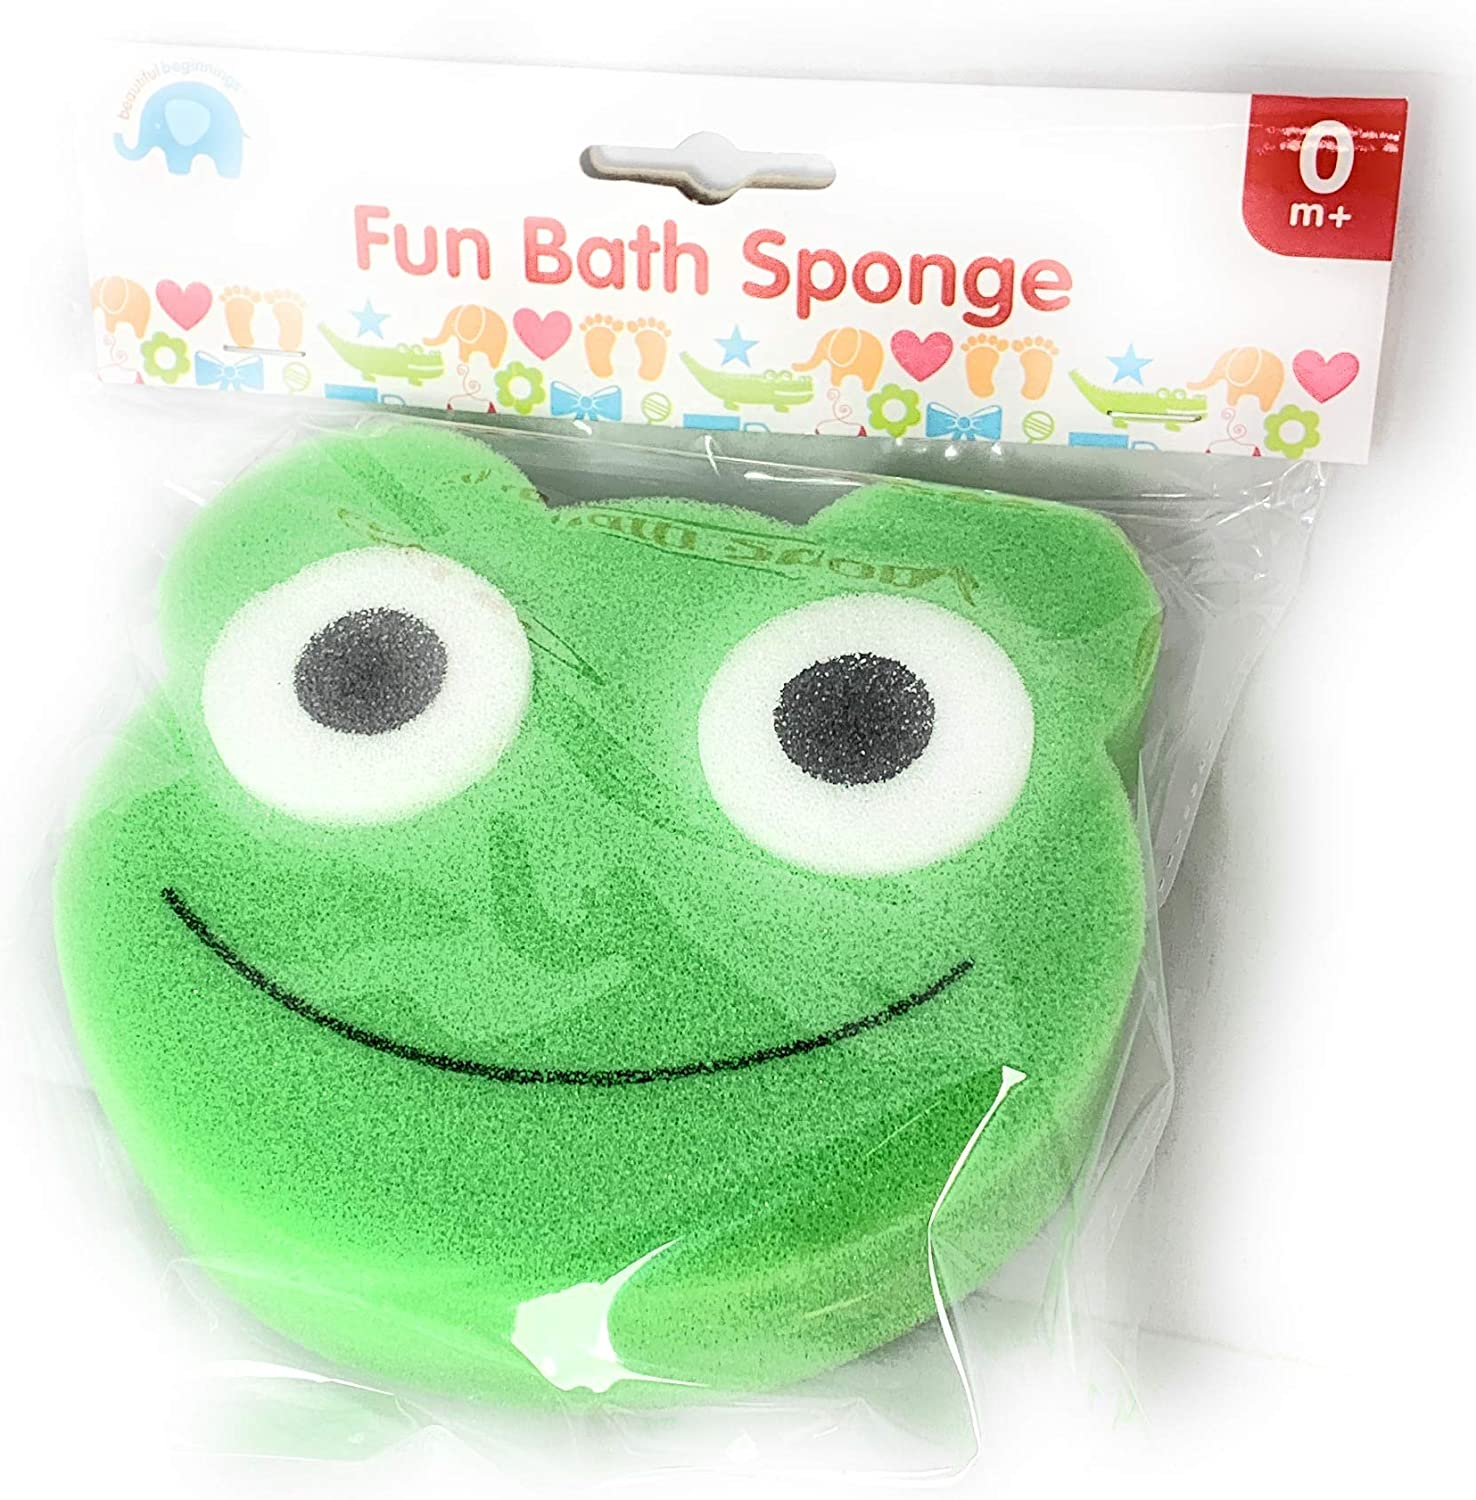 Make bathtime Extra Fun for Your Baby with These Animal-Shaped Bath Sponge Available in Green,Yellow and Pink with a Friendly face Design.